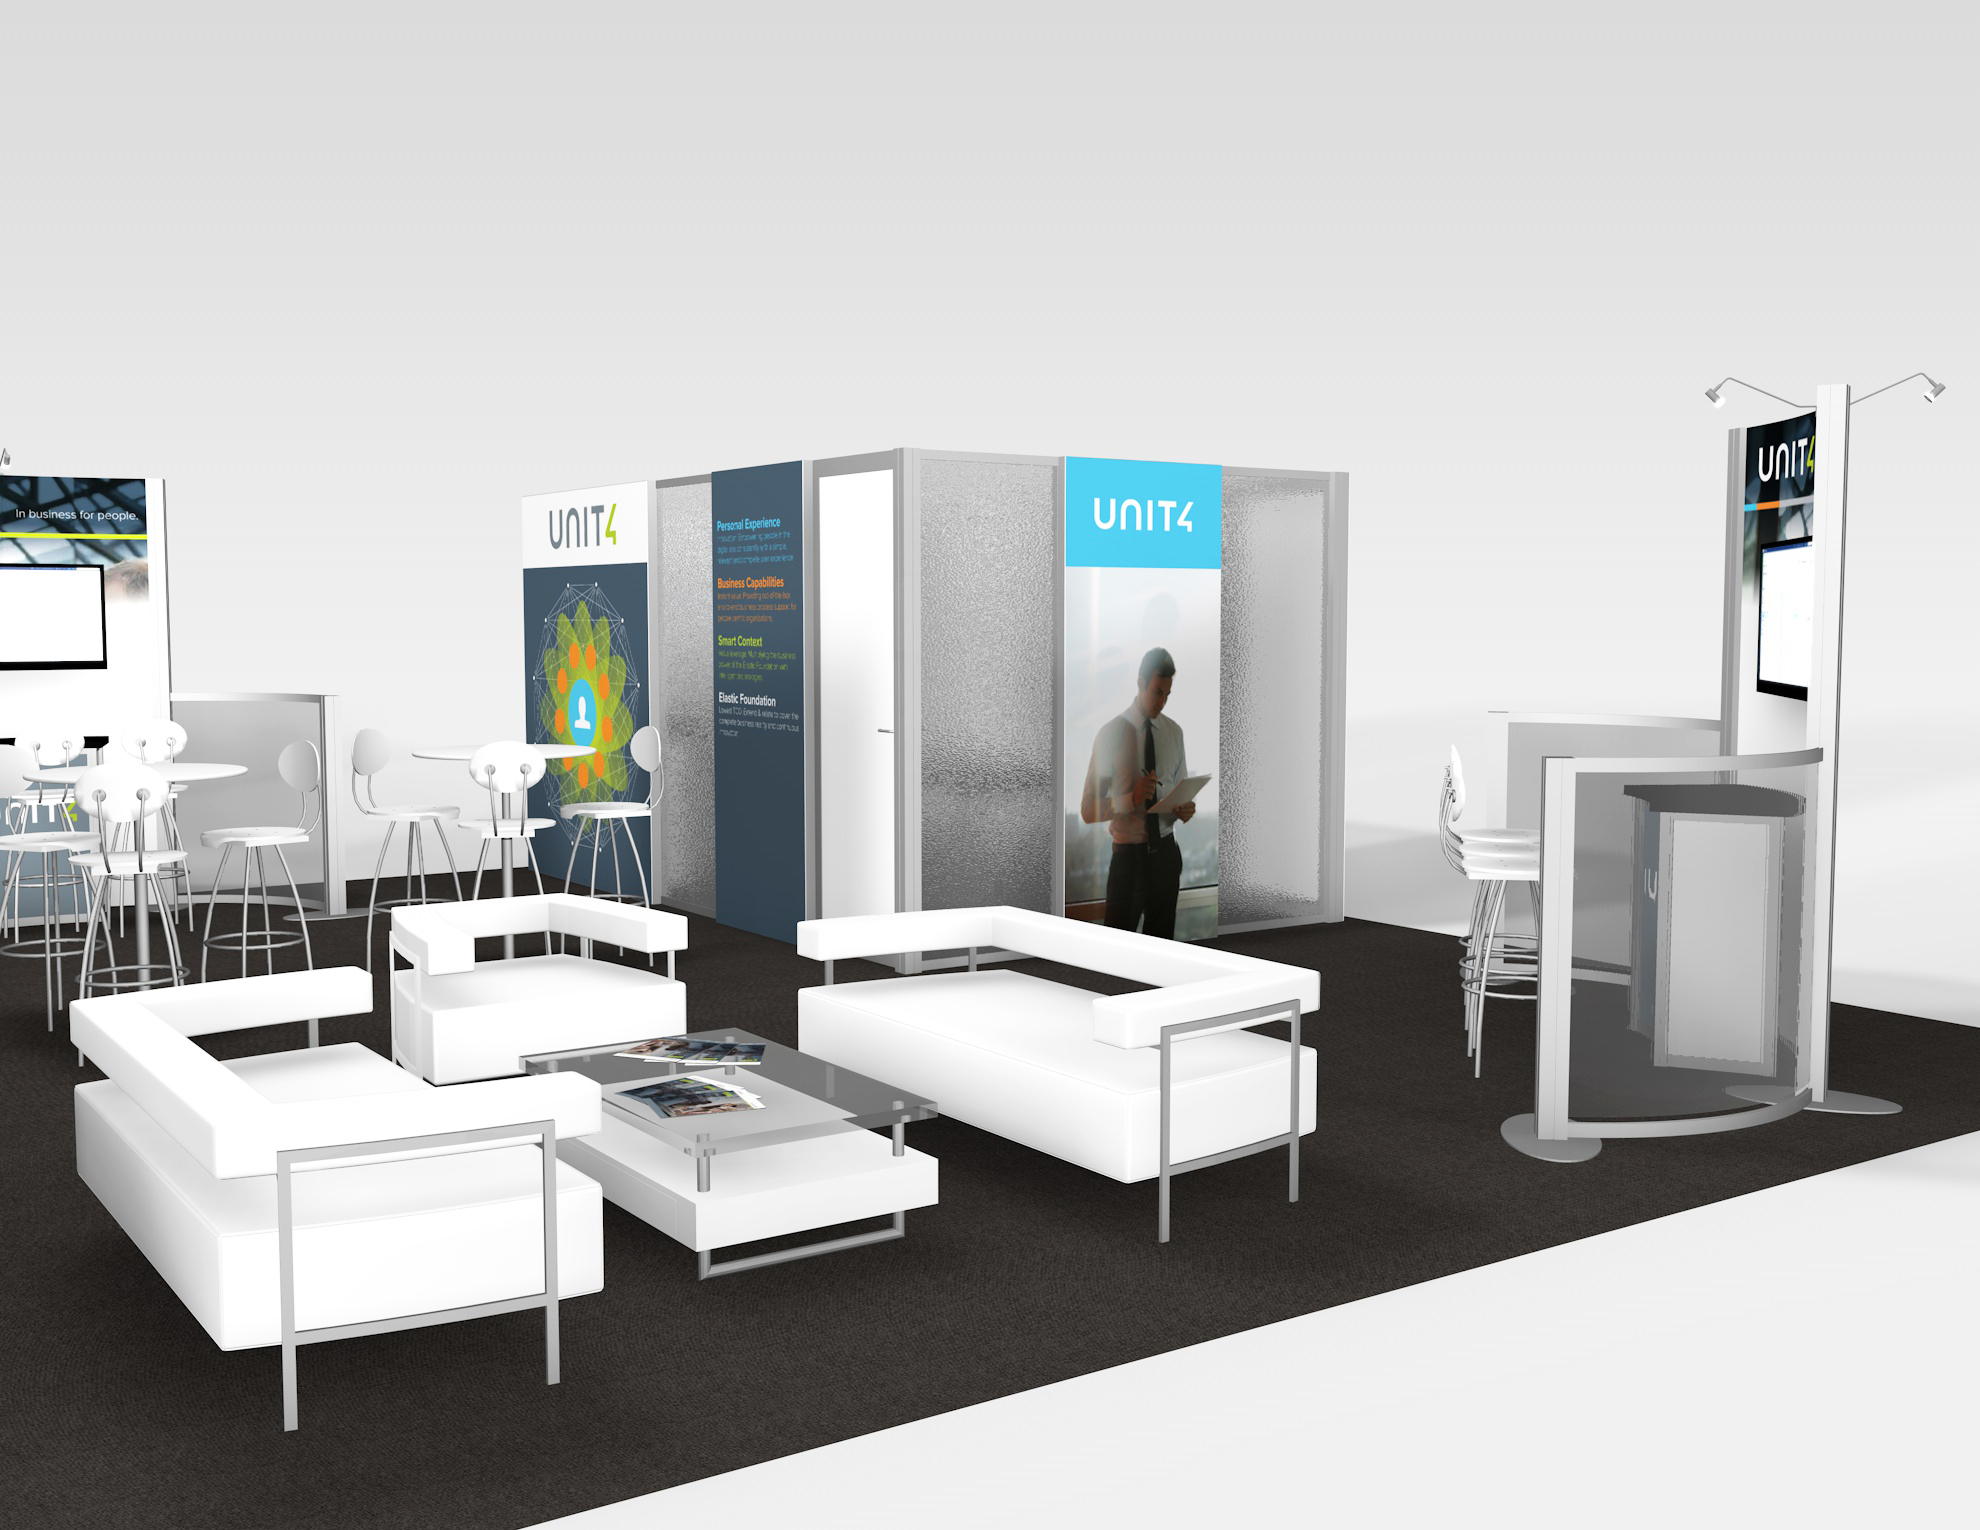 RE-9083 Rental Exhibit / 30' x 40' Island Trade Show Display – Image 6